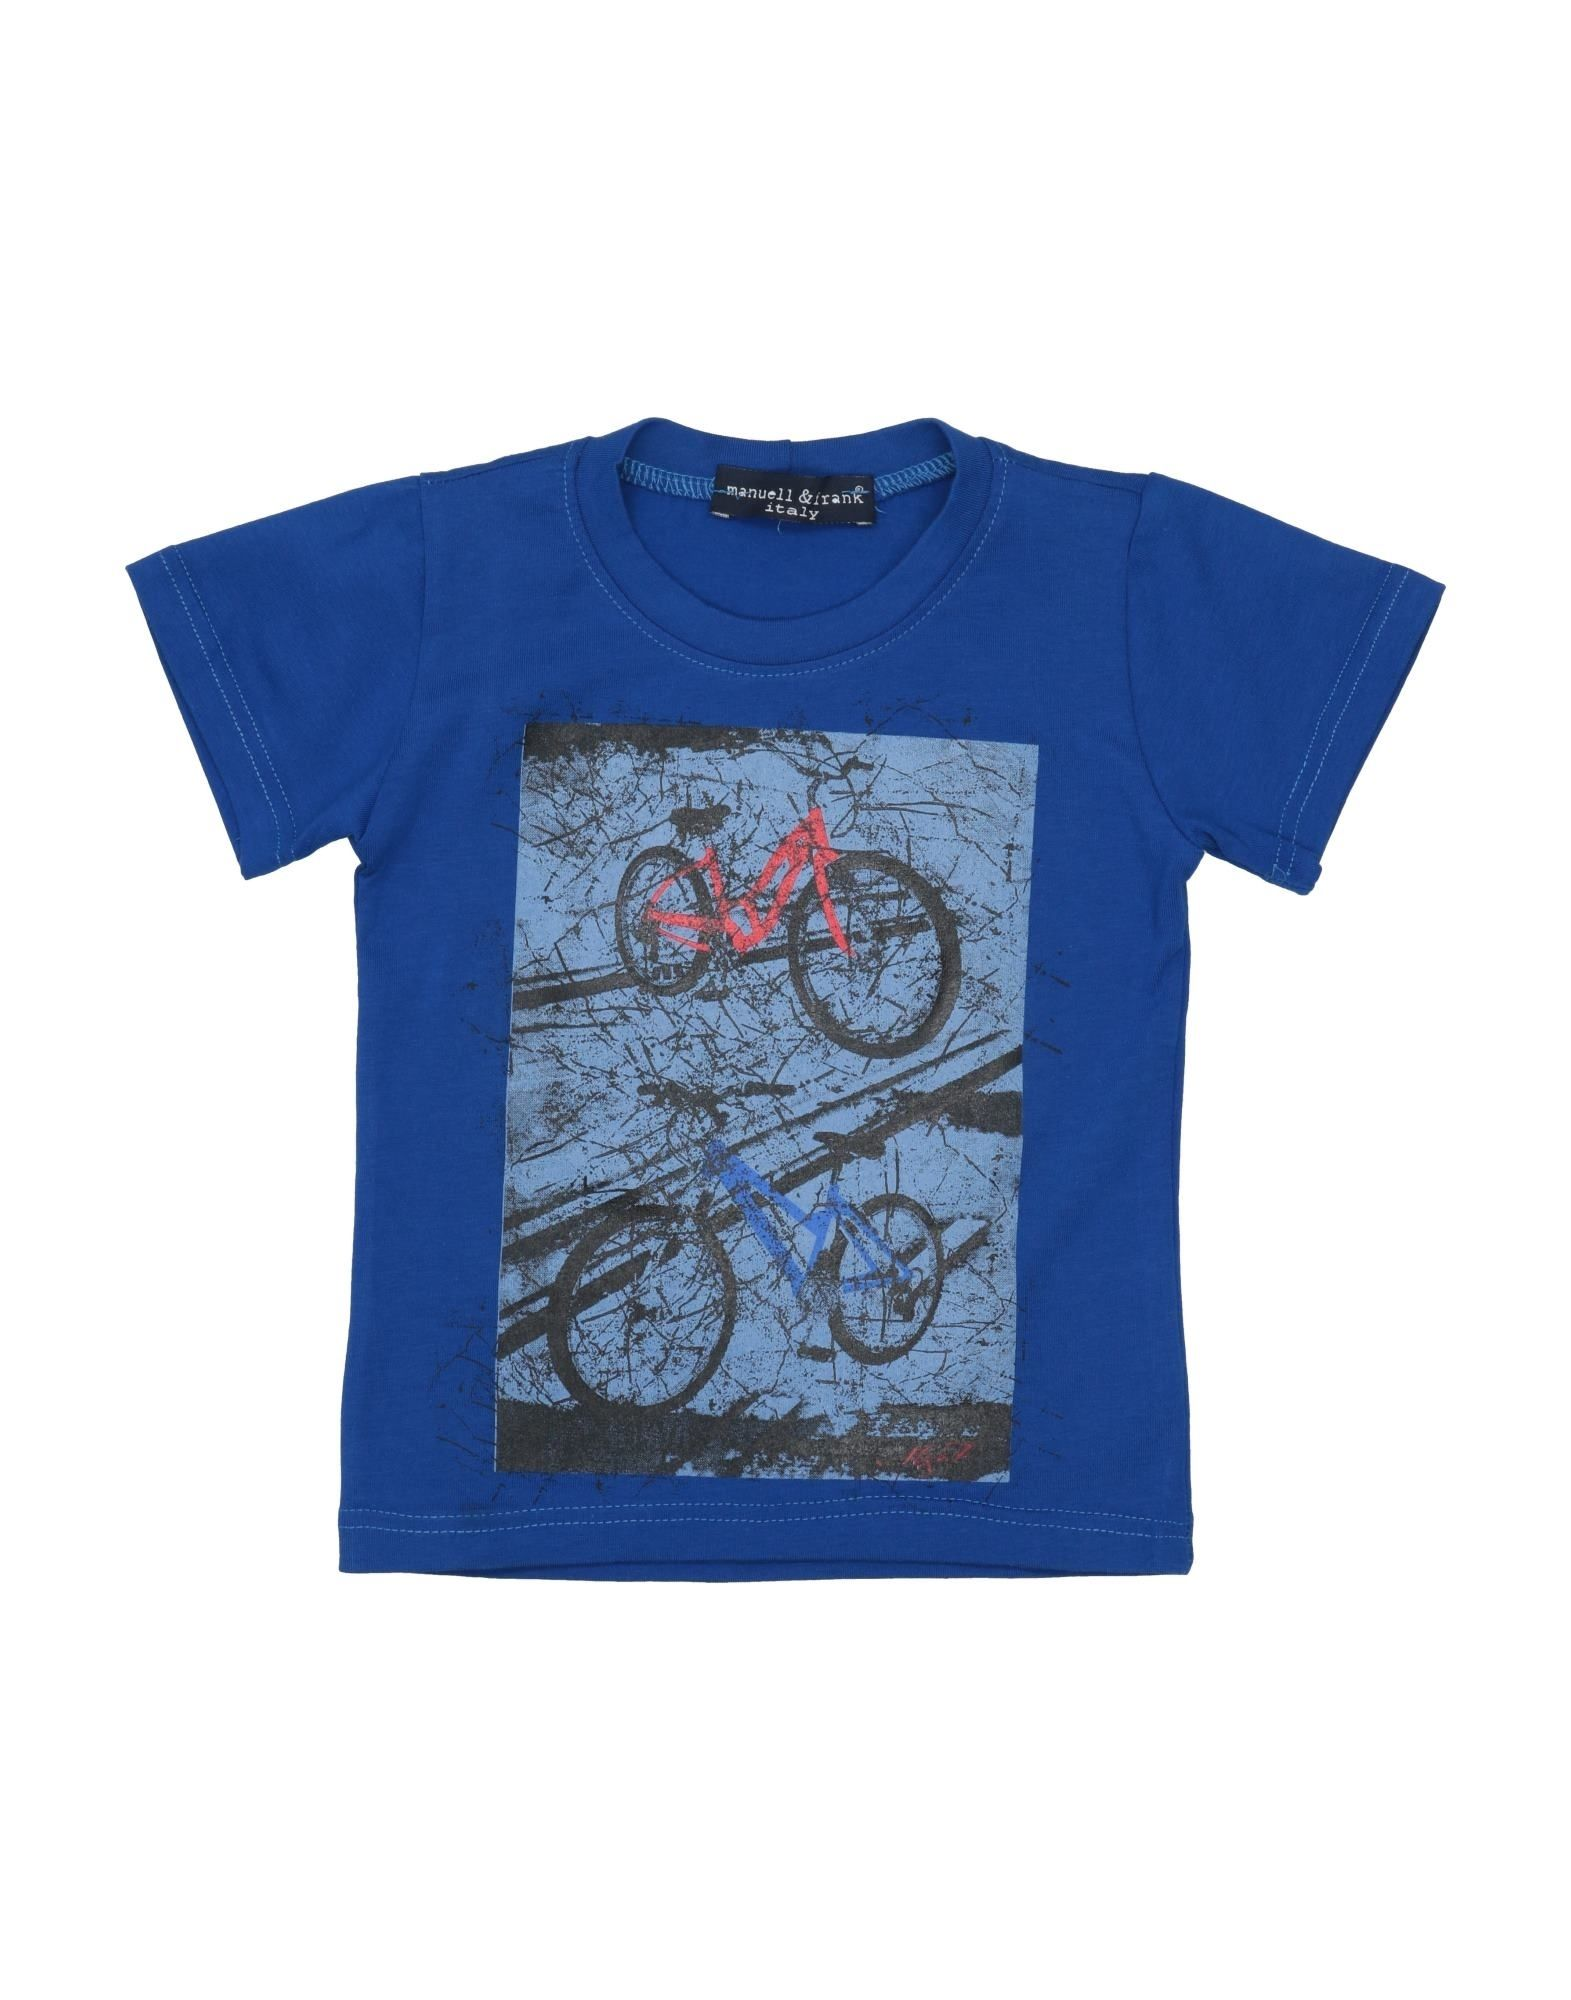 Manuell & Frank Kids' T-shirts In Blue